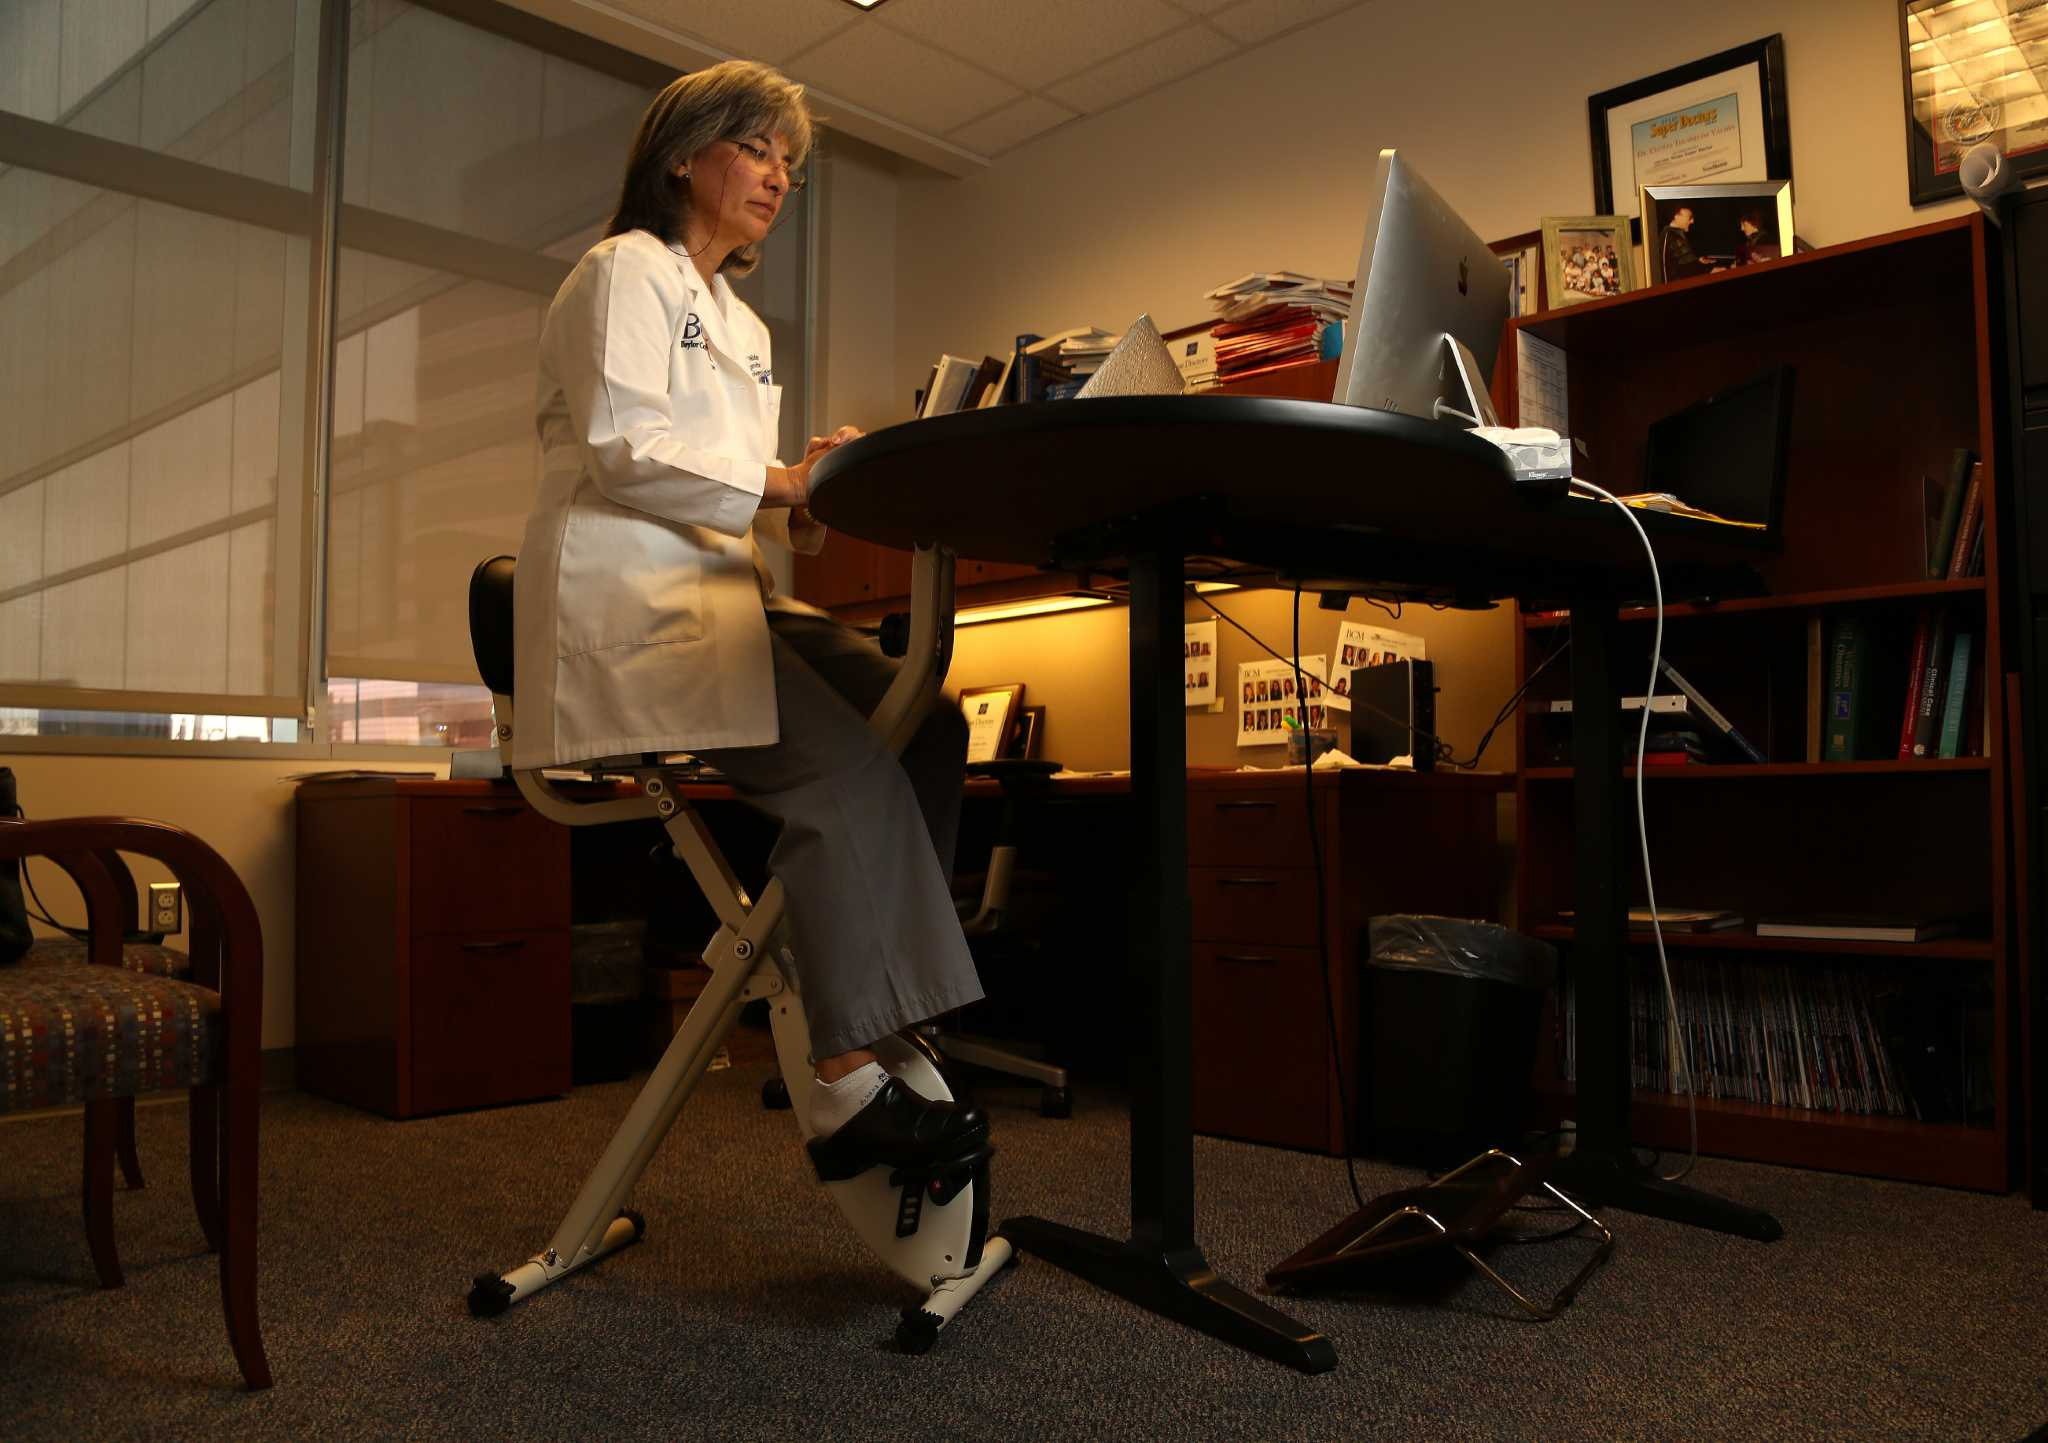 Desks that allow standing and moving improve health Houston Chronicle